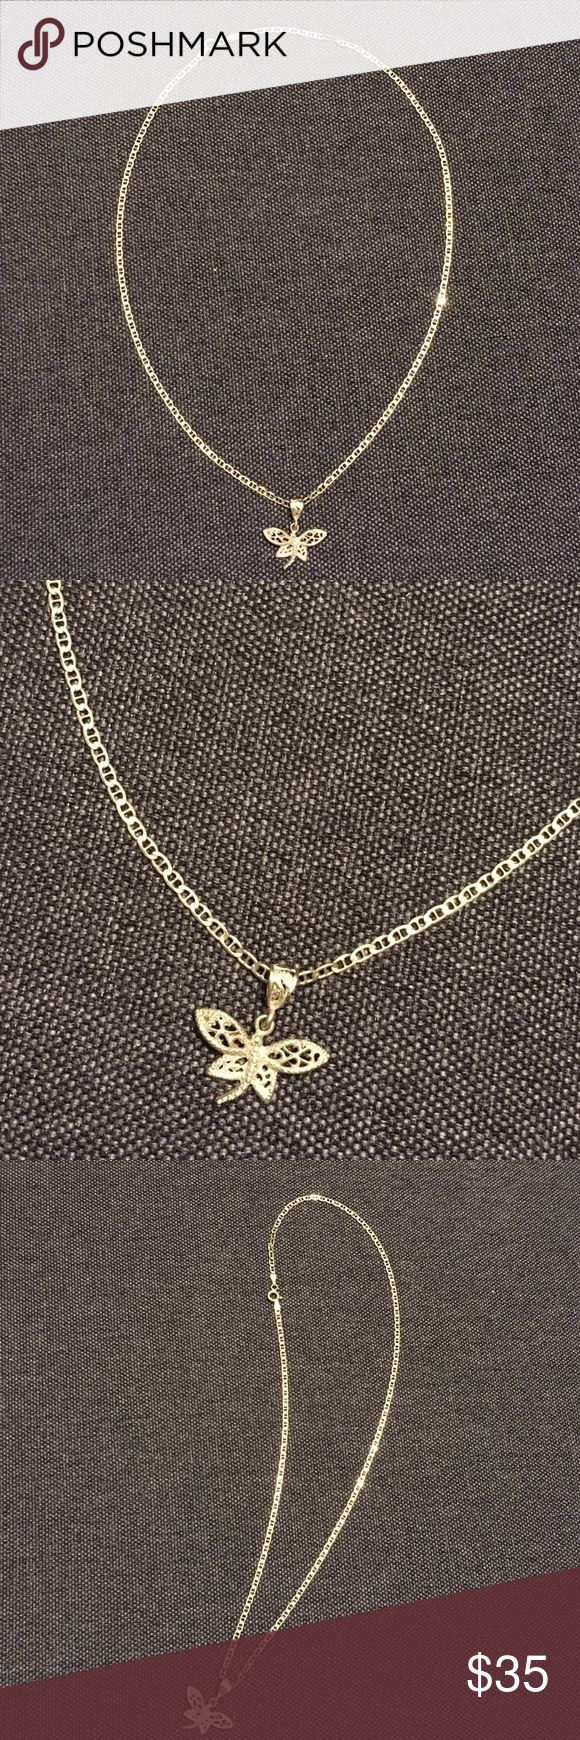 Silver Dragonfly Necklace Italy Jewelry Necklaces